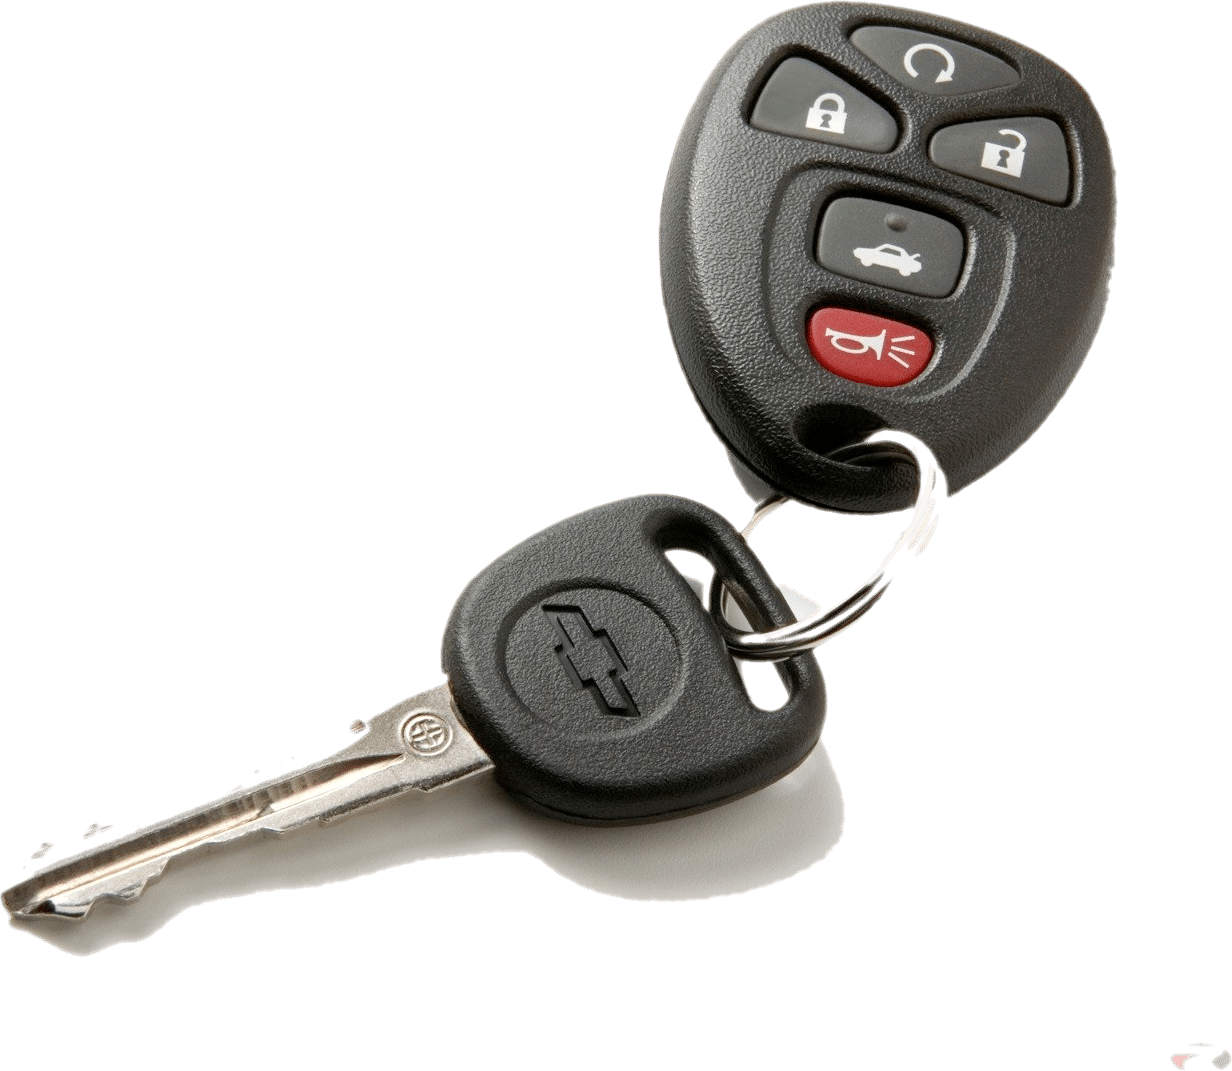 Auto Service Near Me >> Automotive Locksmith | Pro Keys Locksmith